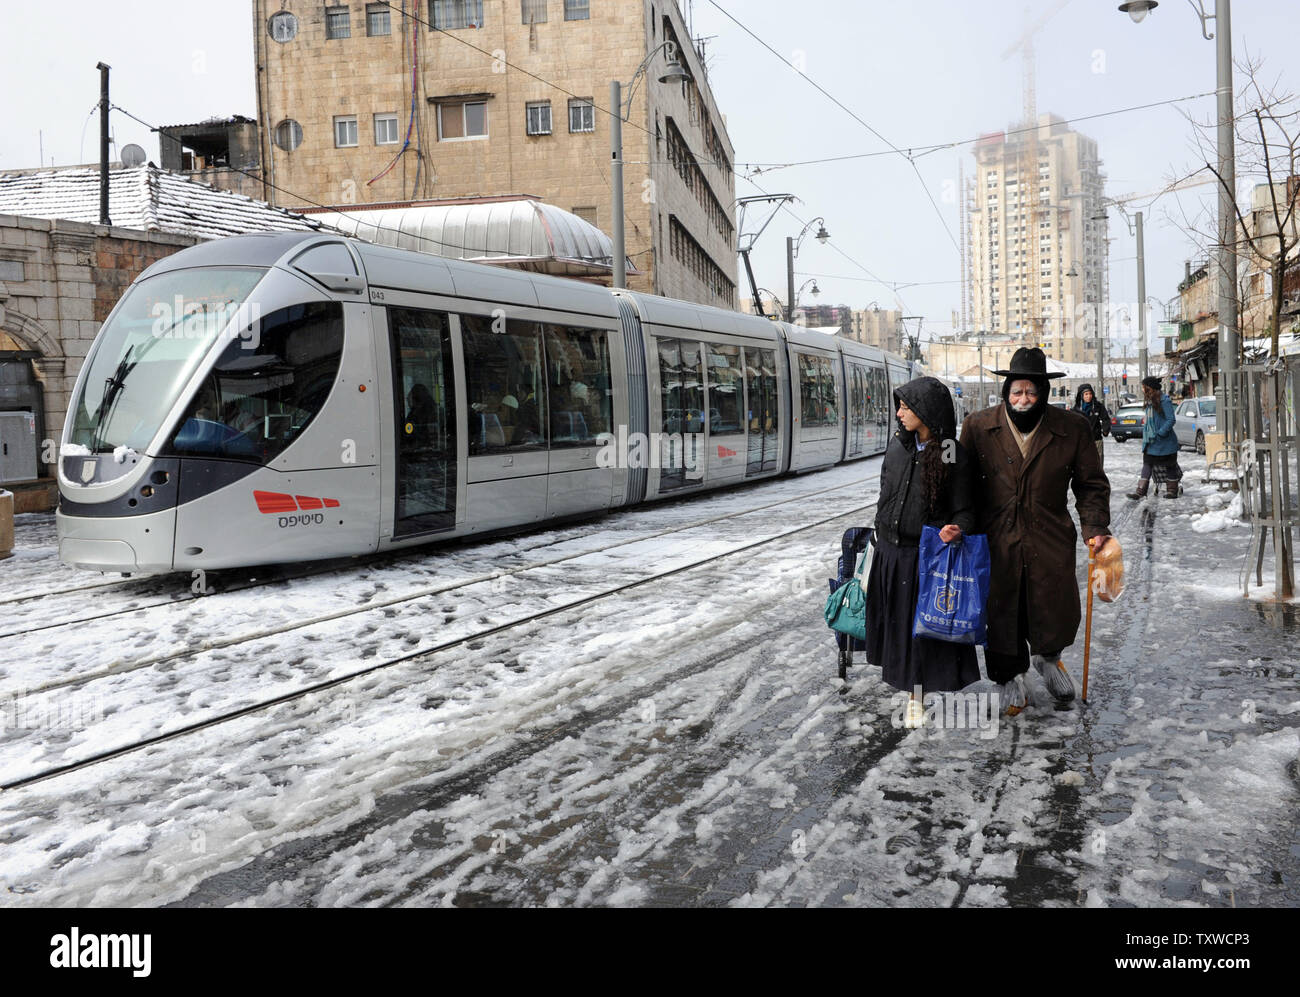 The Jerusalem light rail train passes Israelis walking in a rare winter snow storm on Jaffa Road in central Jerusalem, March 2, 2012. Residents of Jerusalem woke to 1.575 inches of snow in the first snow fall in Jerusalem in more than two years.  UPI/Debbie Hill - Stock Image